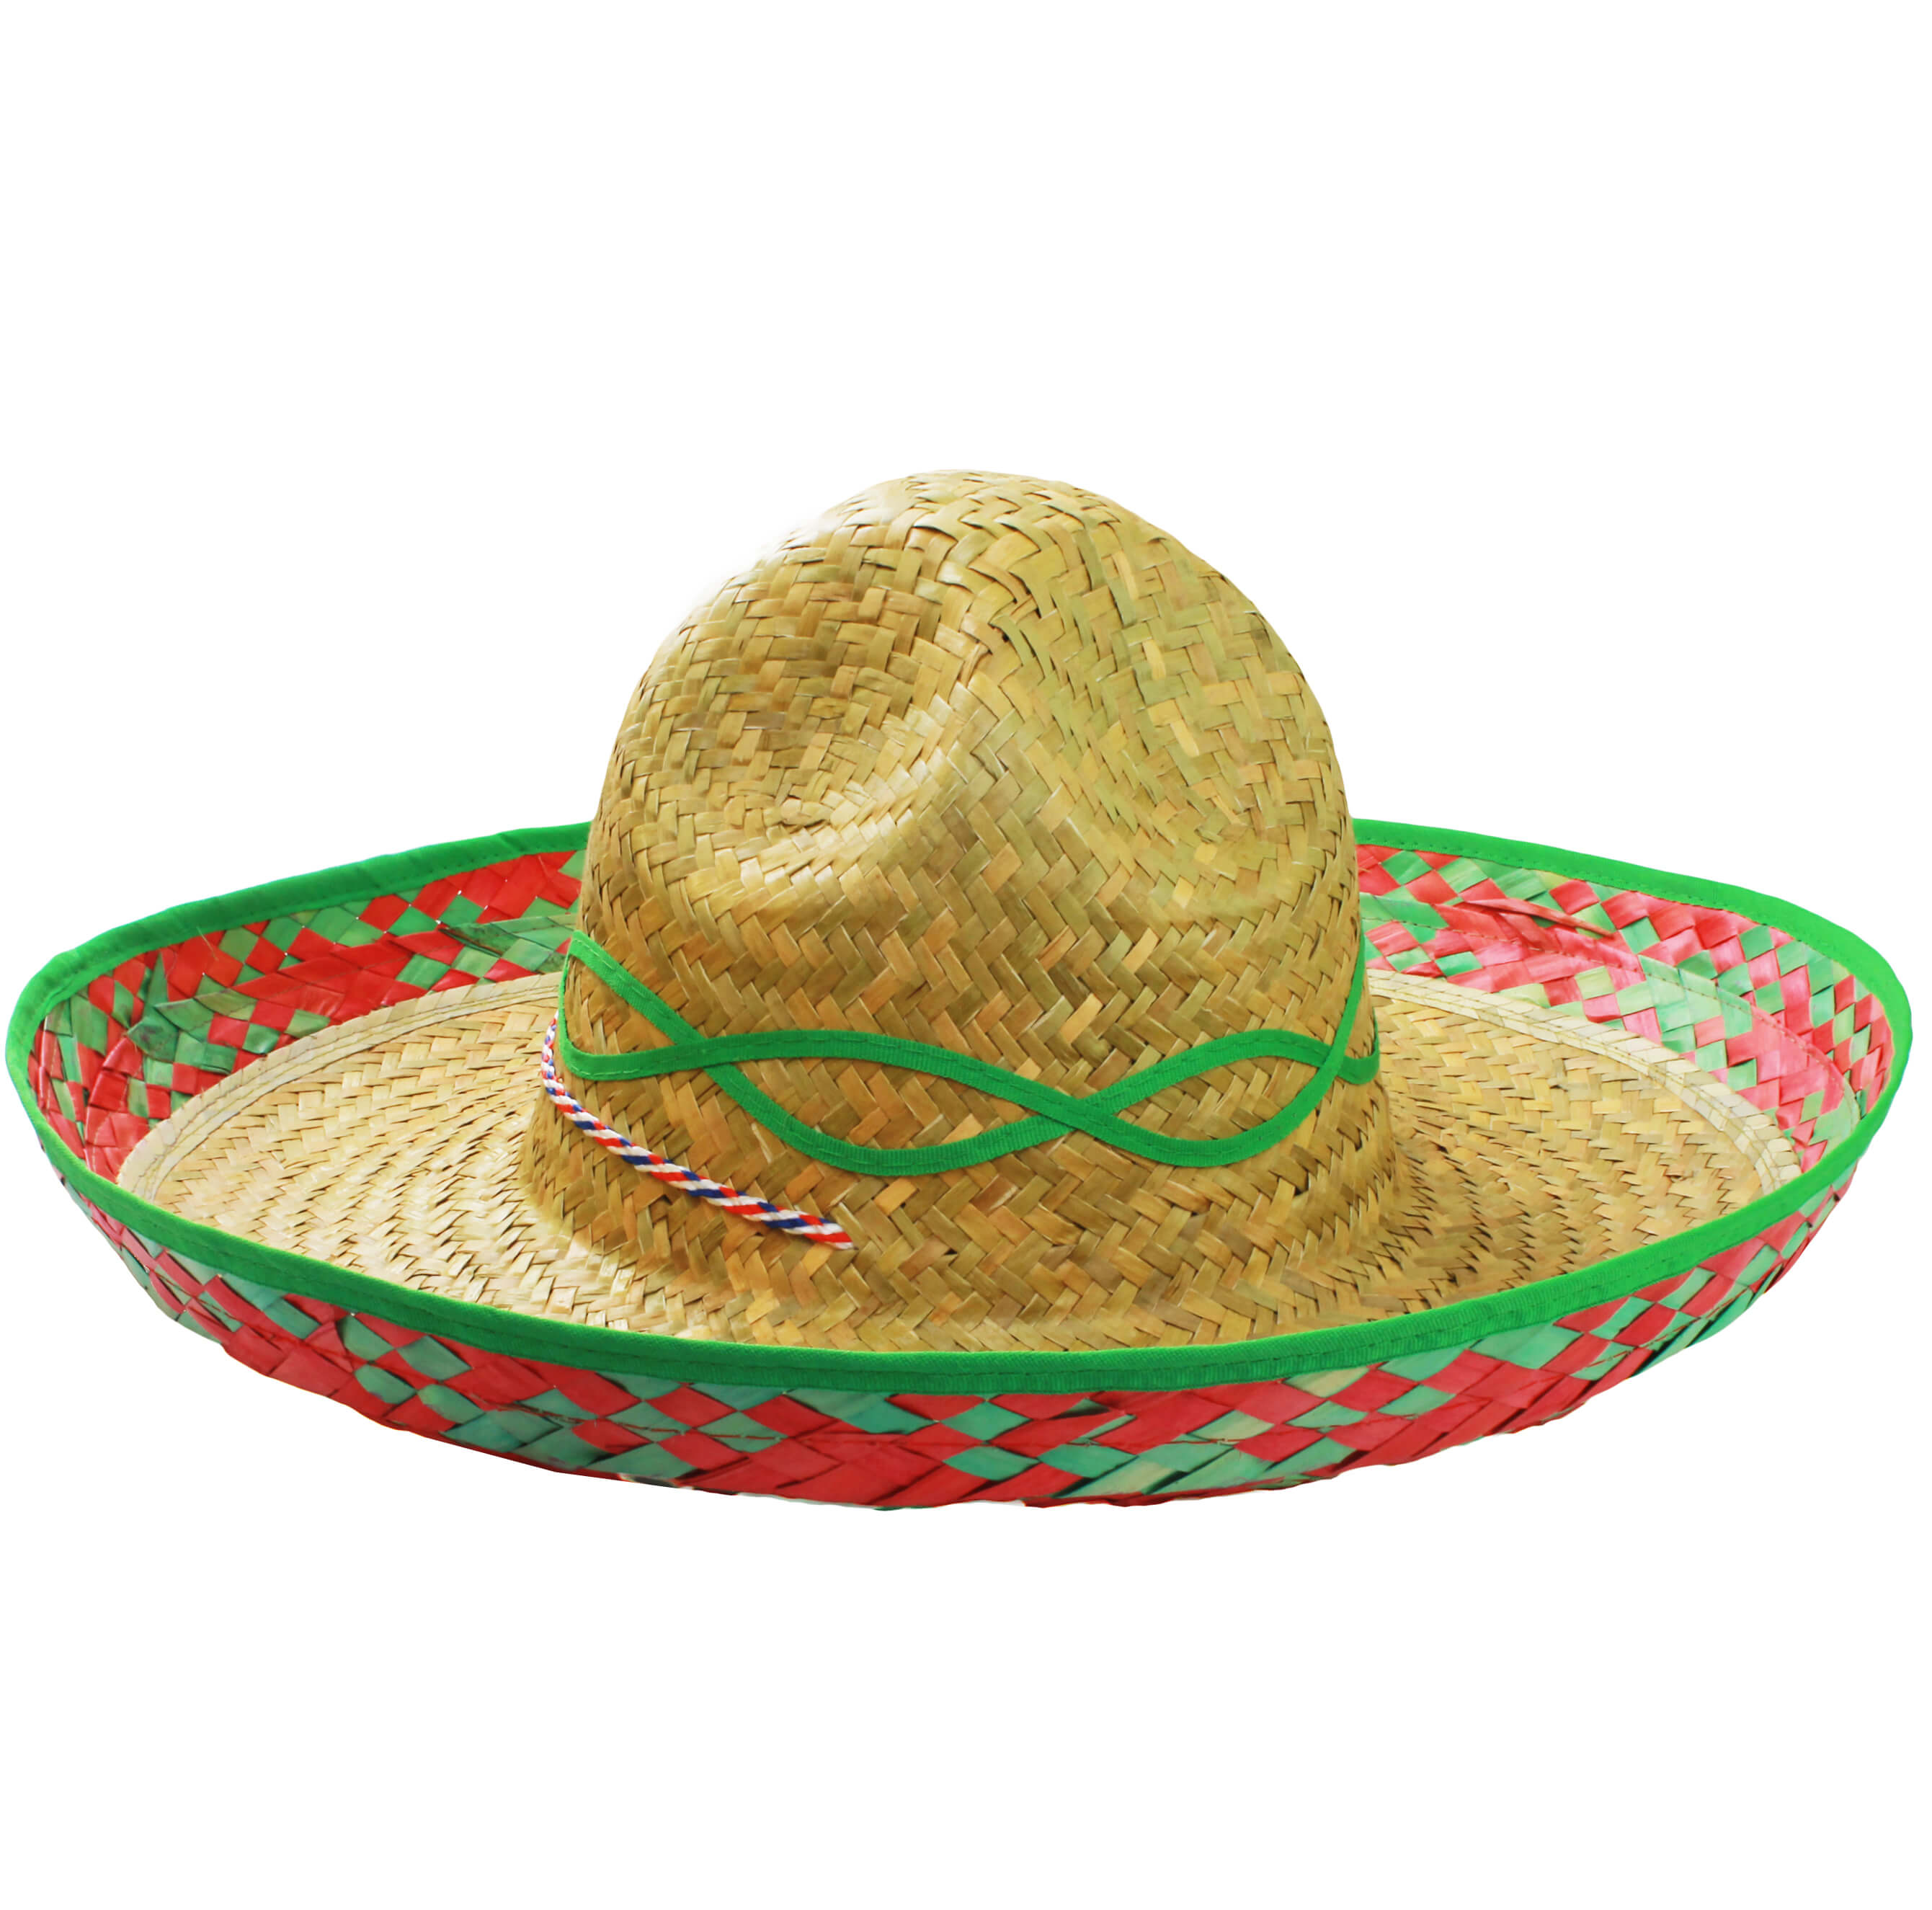 Mexican Sombrero Straw Hat with Green Design - I Love Fancy Dress 2d9a635e4b61